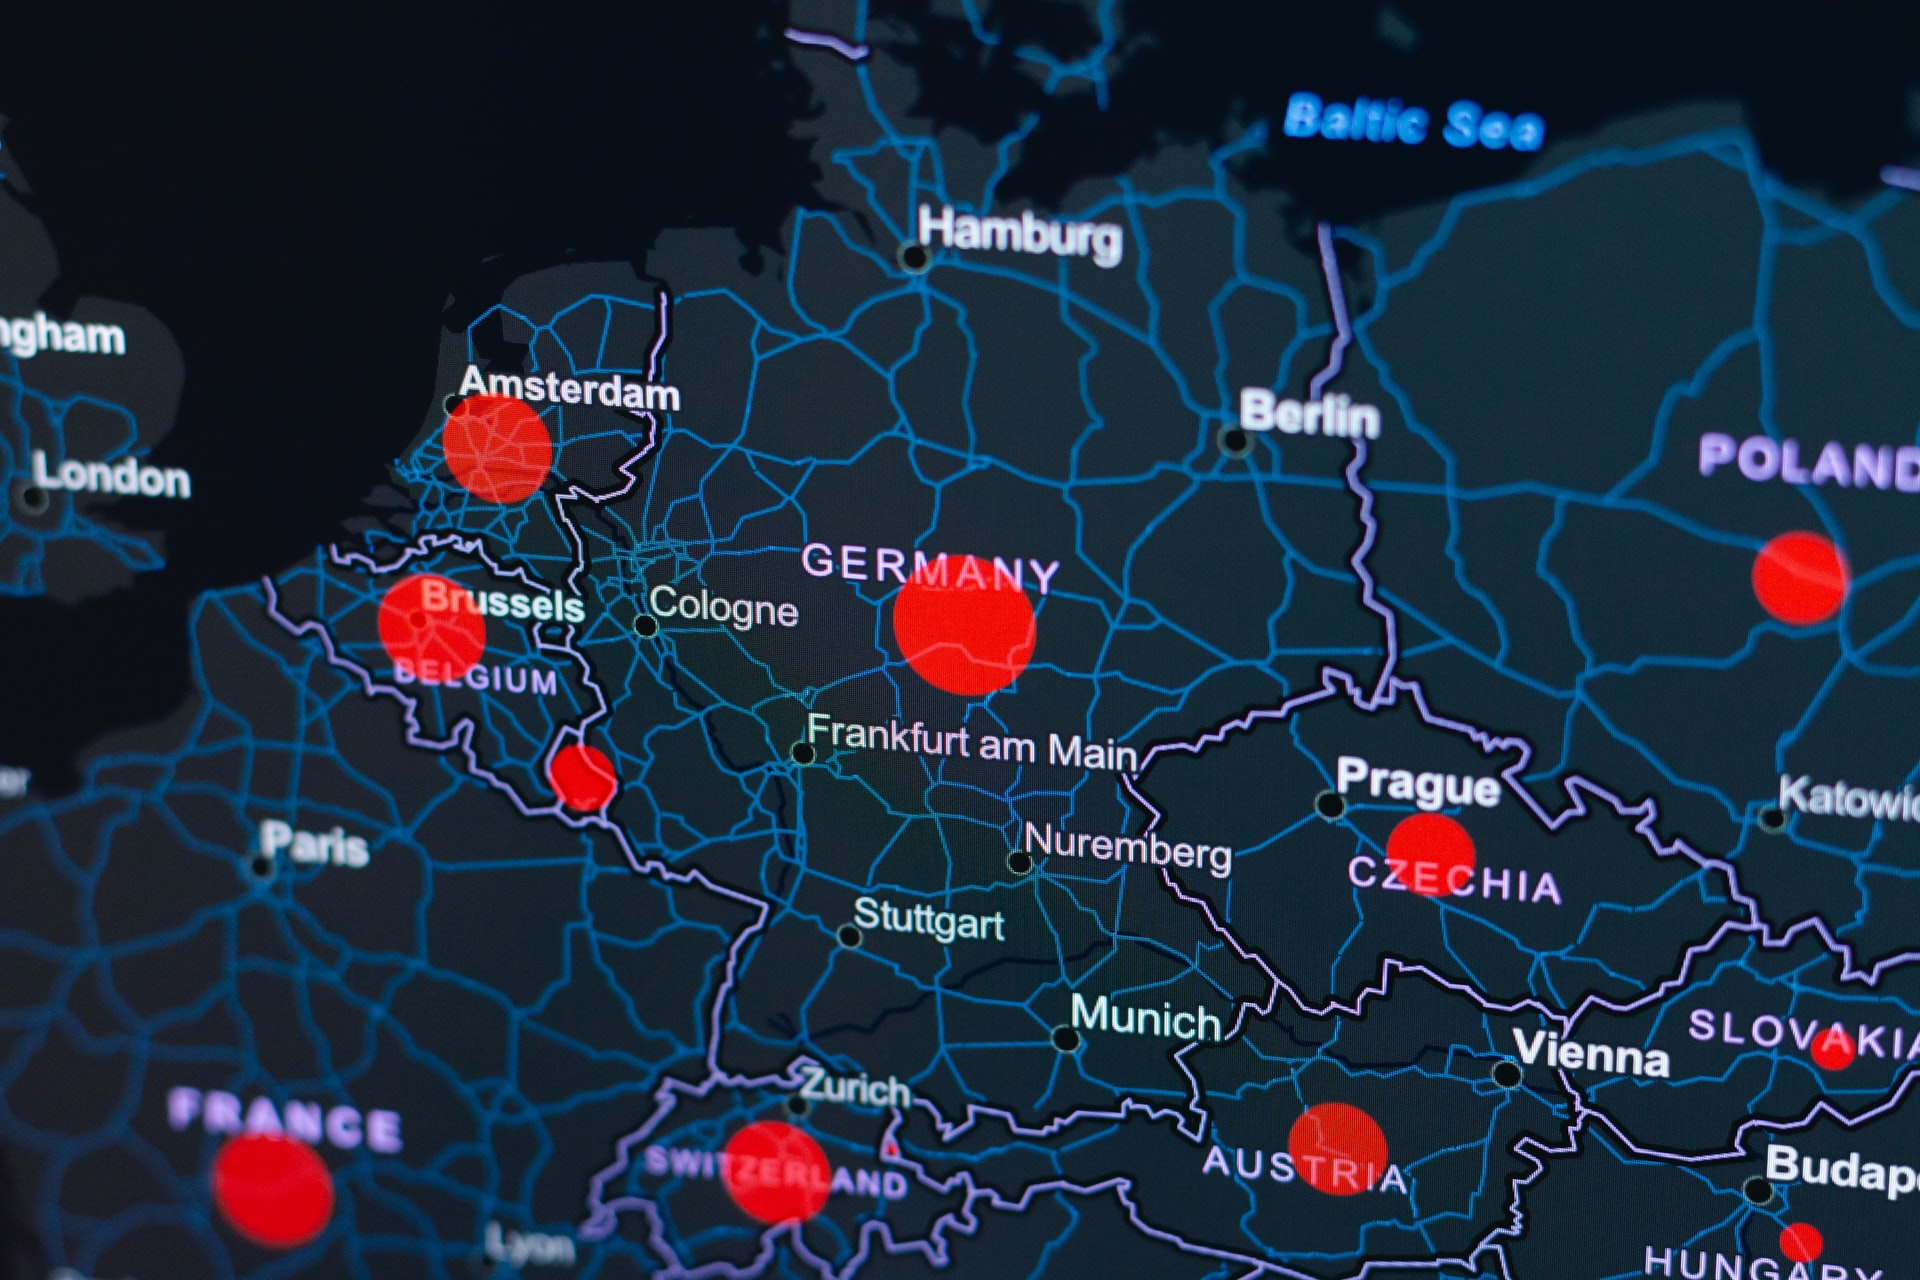 Germany: Perspective On The U.S.-Germany Alliance, EU, And International Security